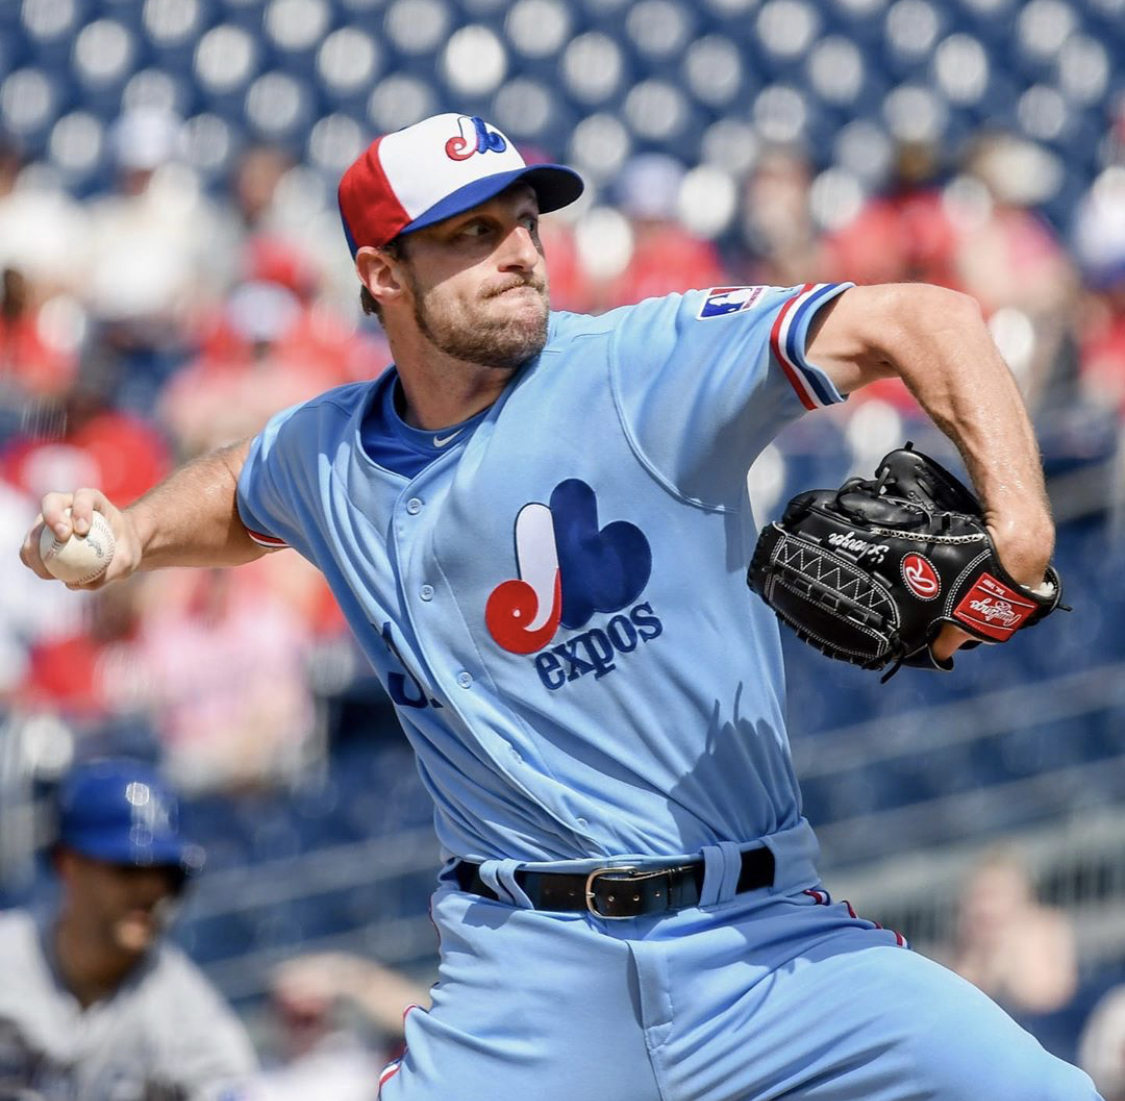 timeless design c15d7 2e7c5 Washington Nationals Expos Throwback Uniform — UNISWAG